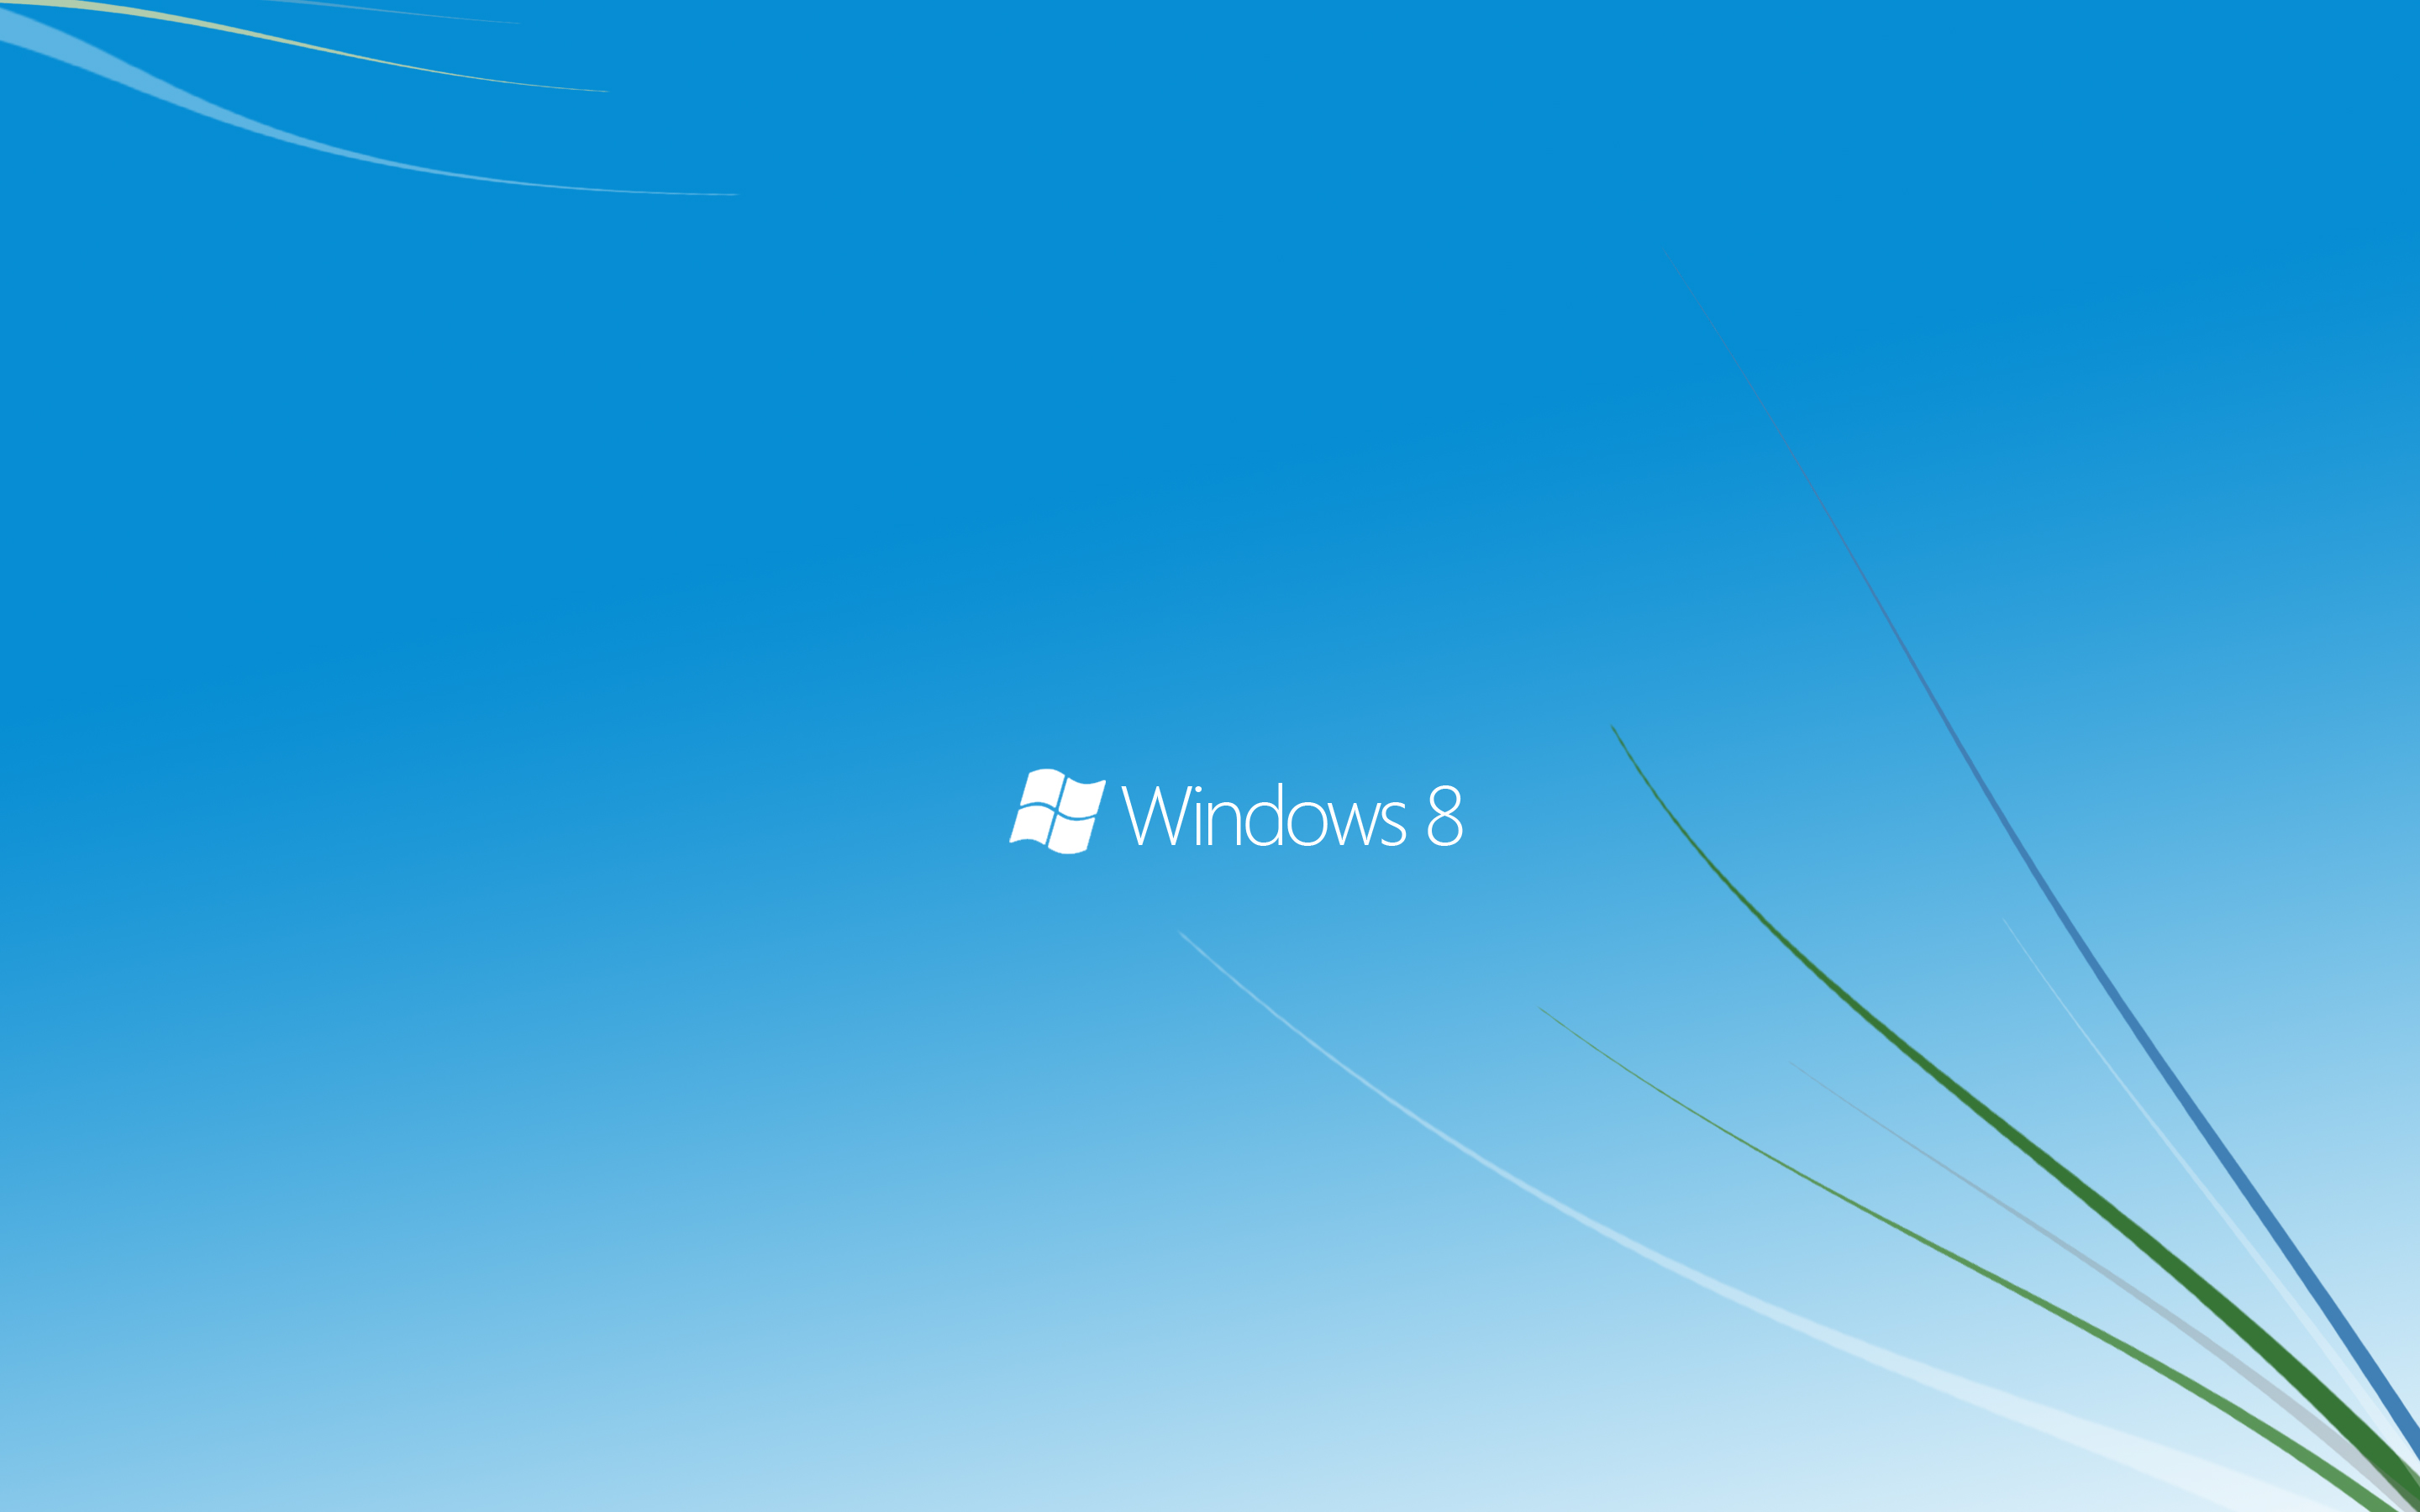 Download Wallpaper High Quality Windows 8 - Windows-8-Wallpapers-28-2880-x-1800  Pictures_667915.jpg